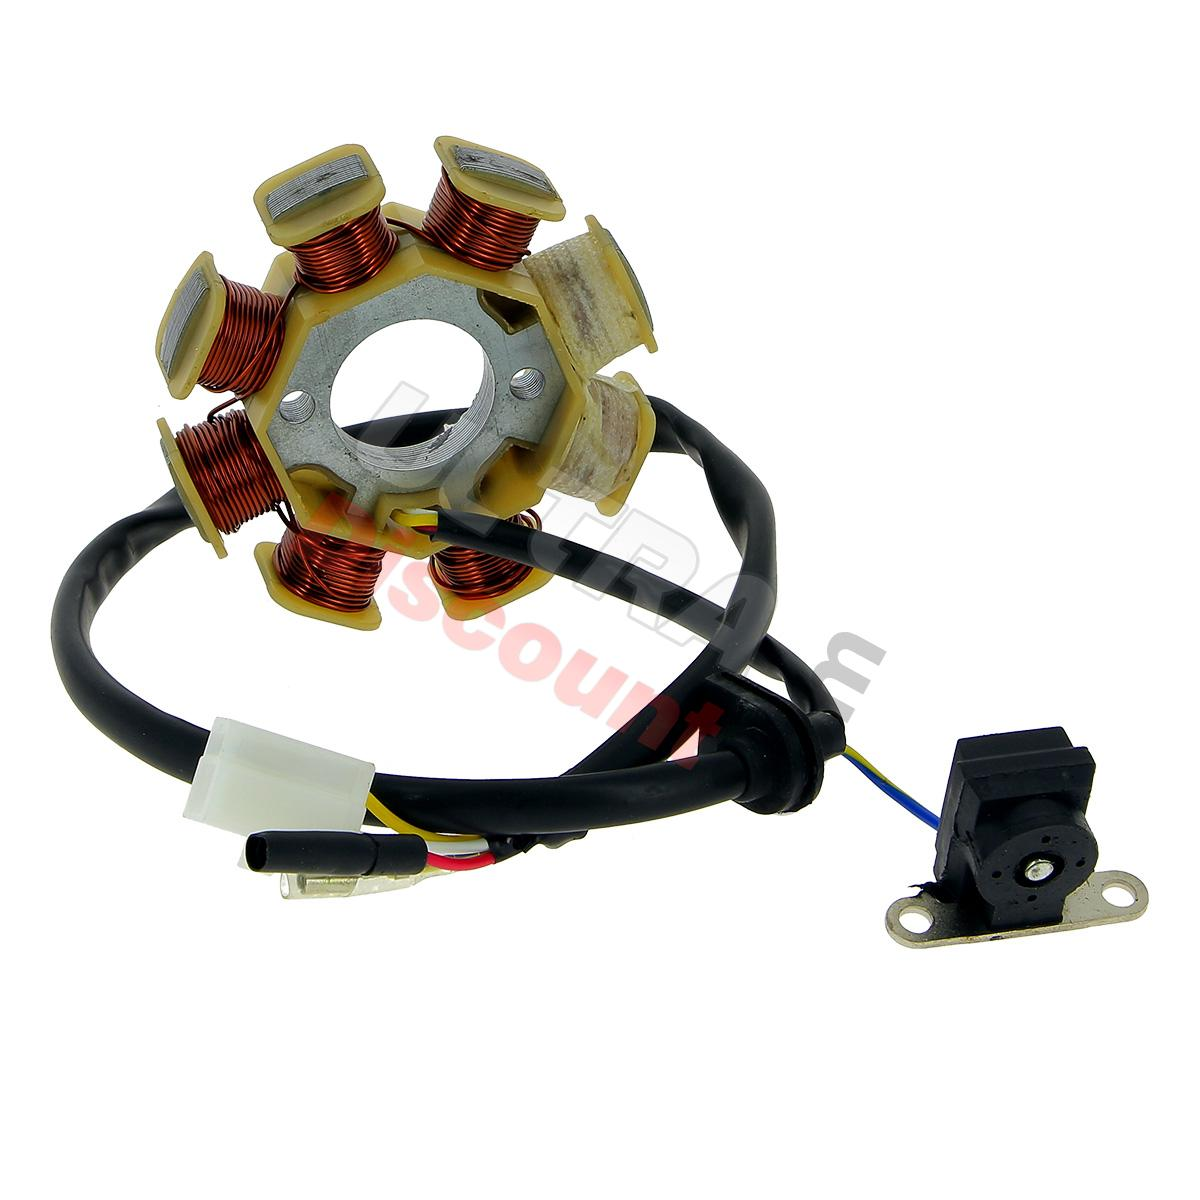 stator pour scooter chinois 50cc 4temps 4 fils pi ces scooter allumage ultra. Black Bedroom Furniture Sets. Home Design Ideas